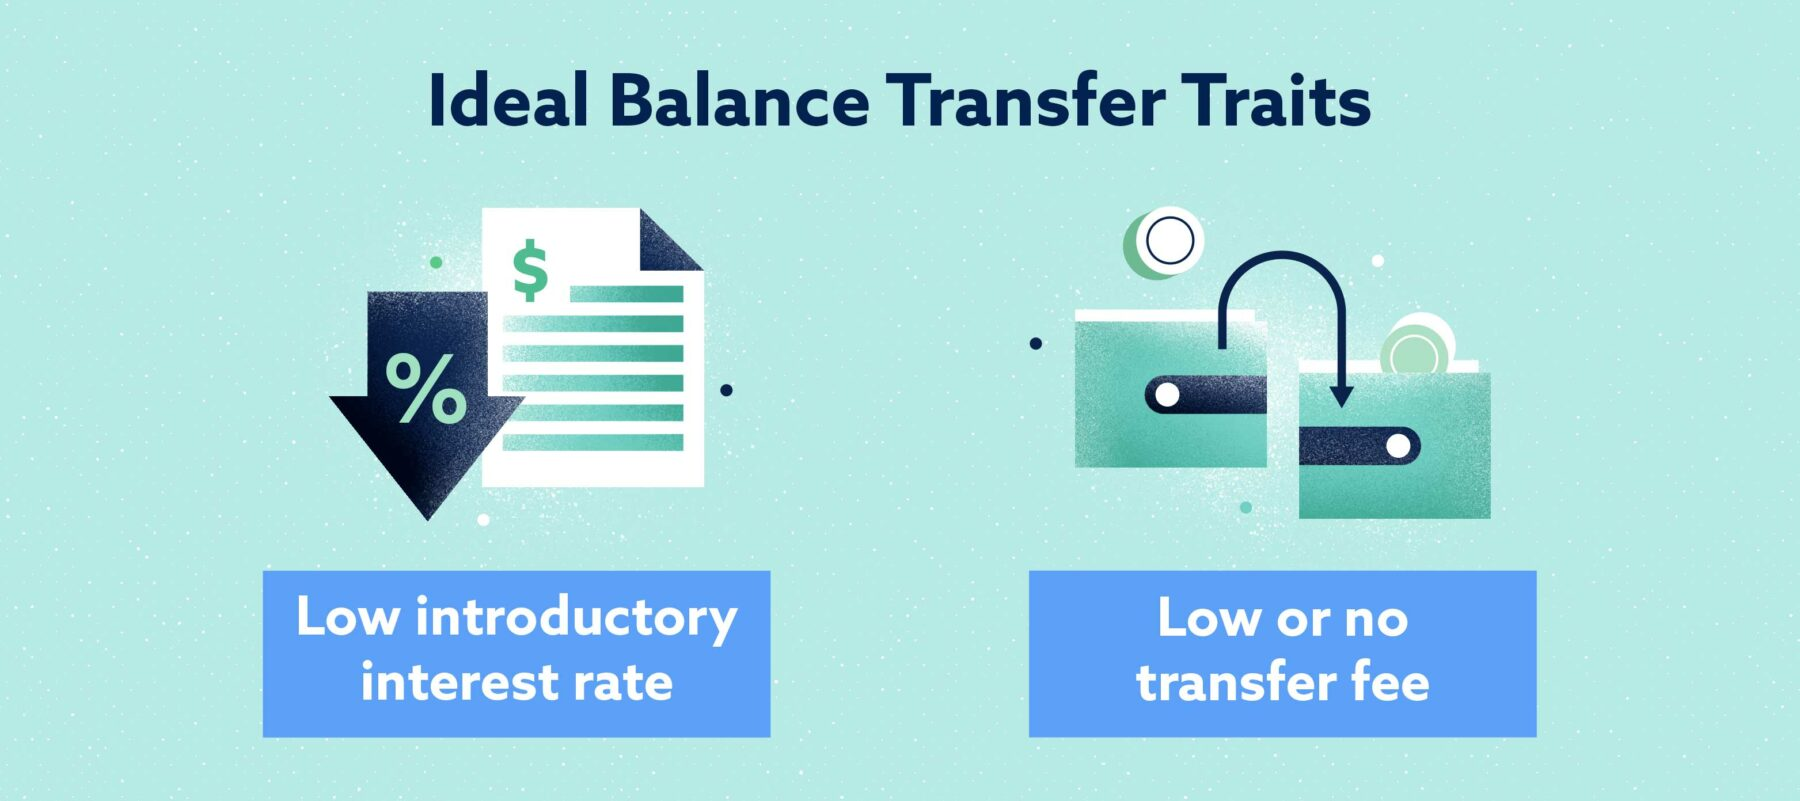 Ideal Balance Transfer Traits Image